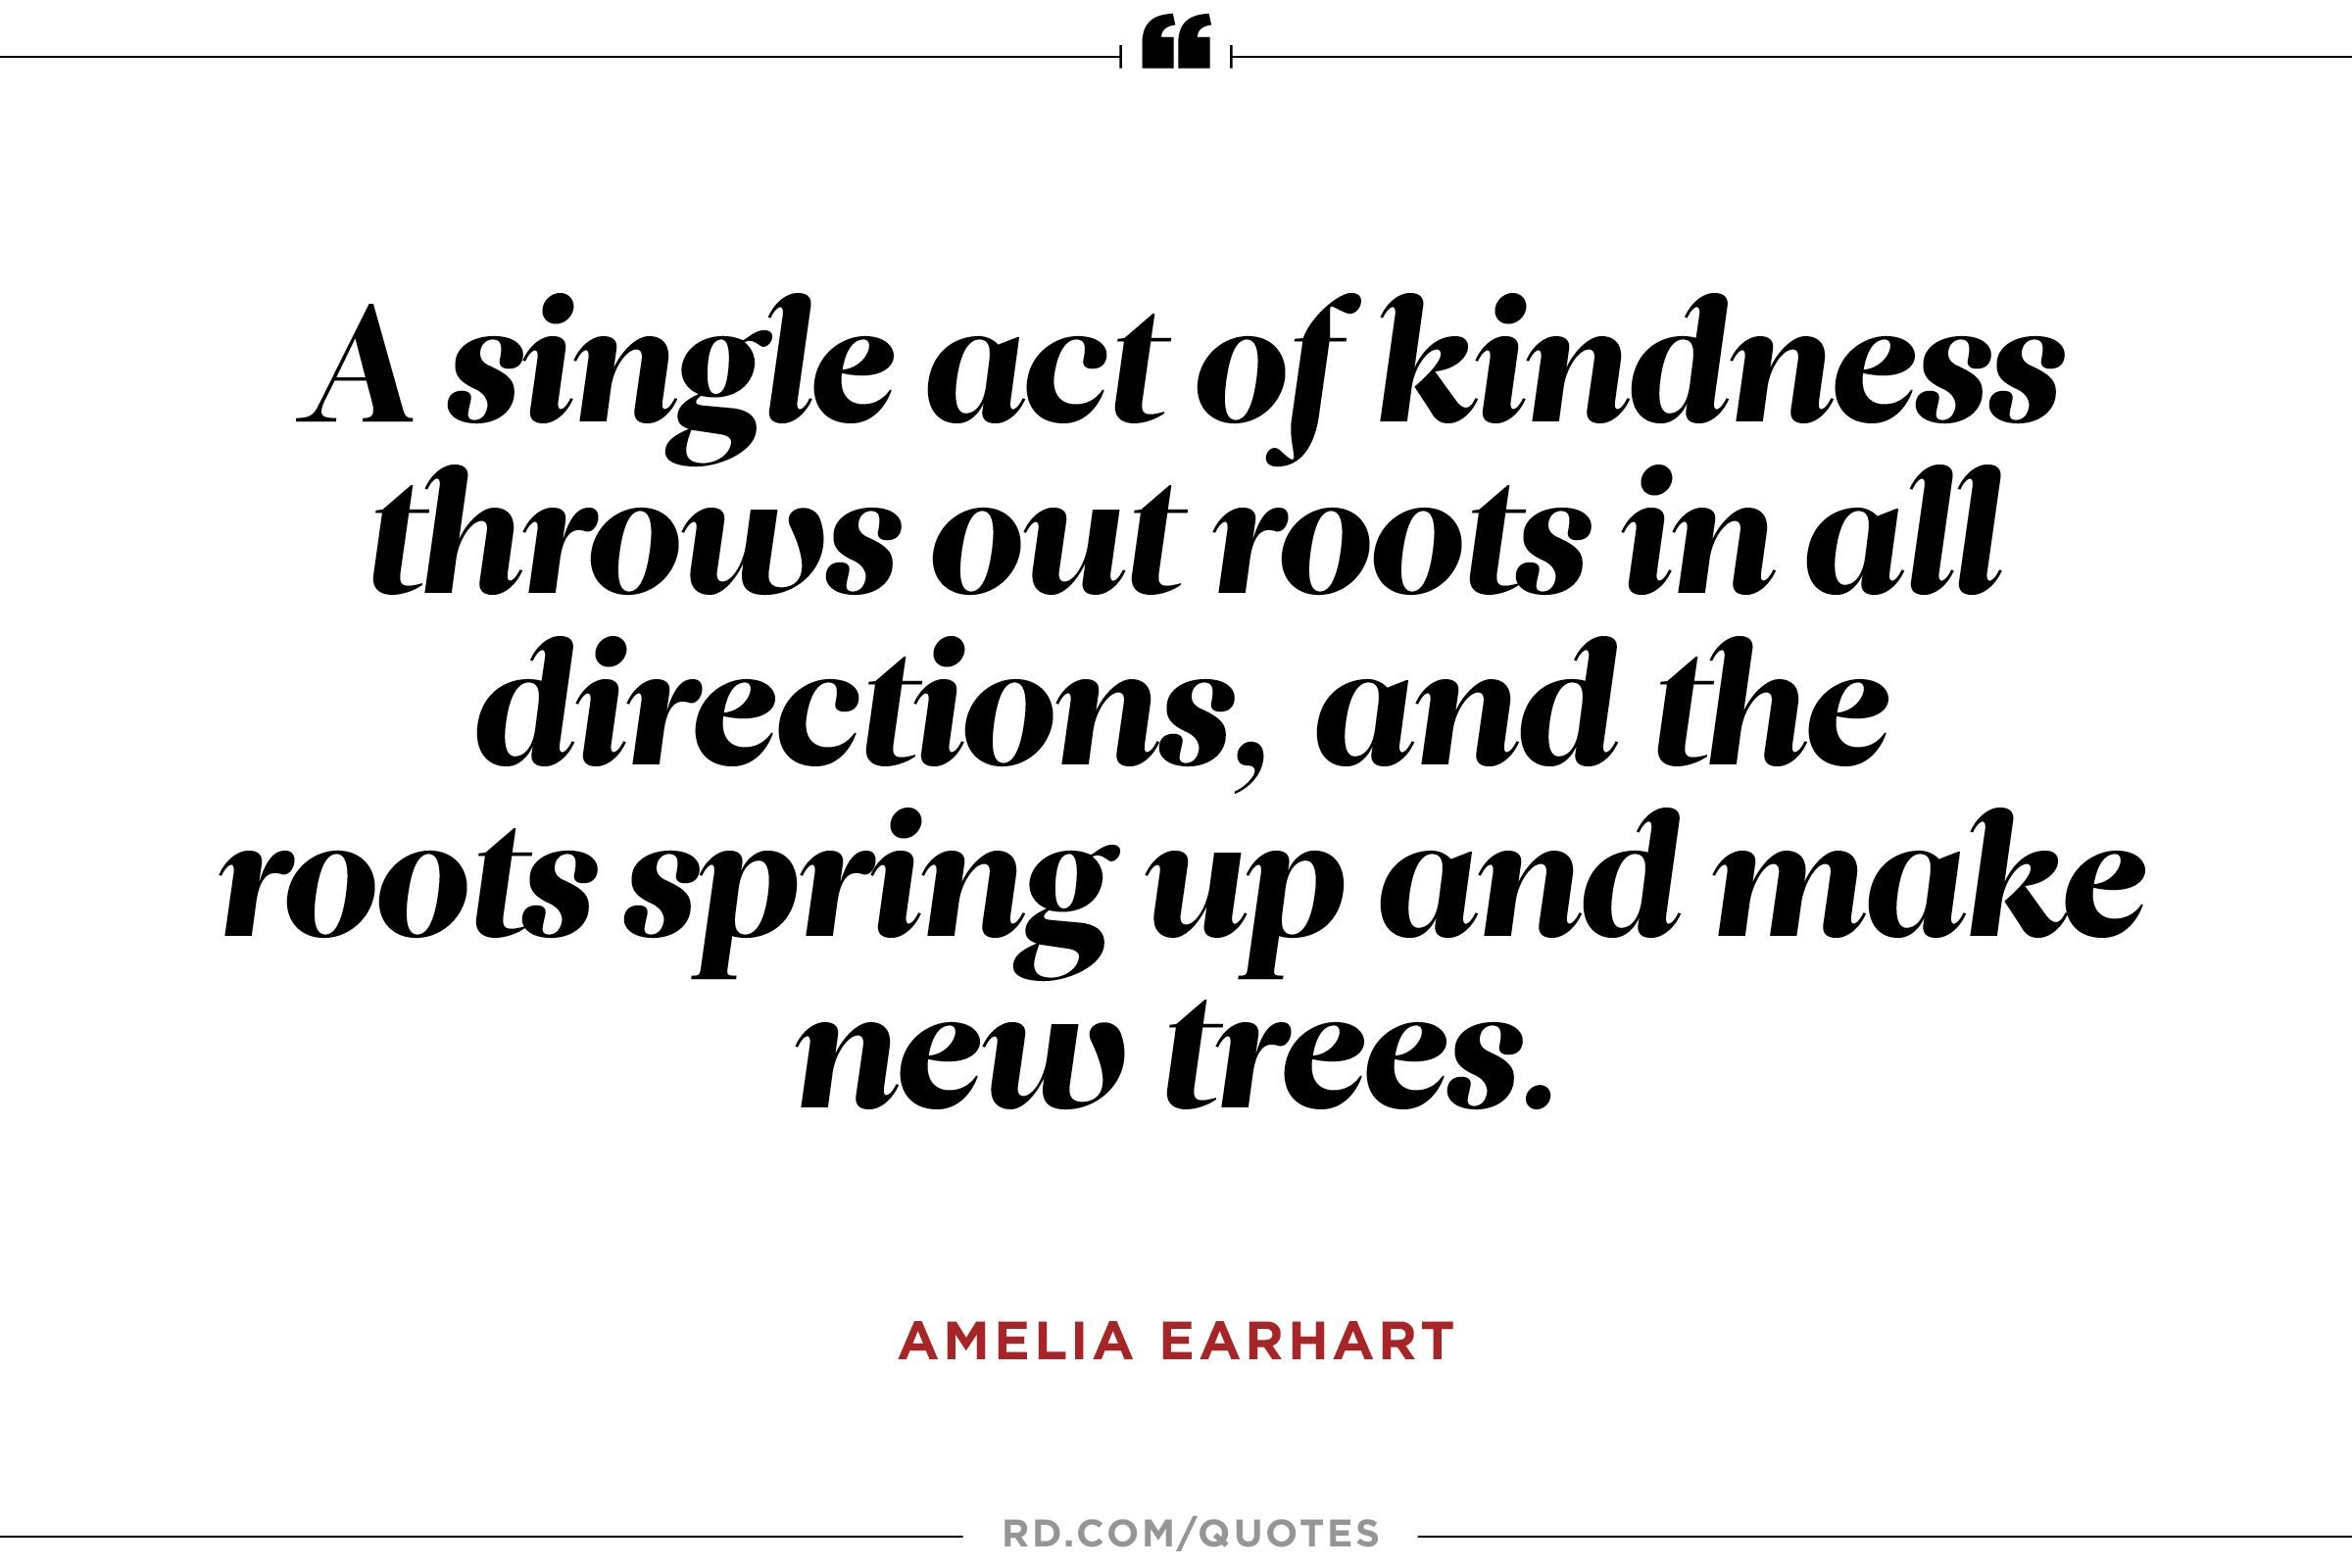 Quotes Kindness 10 Amelia Earhart Quotes To Propel You To Greatness  Reader's Digest